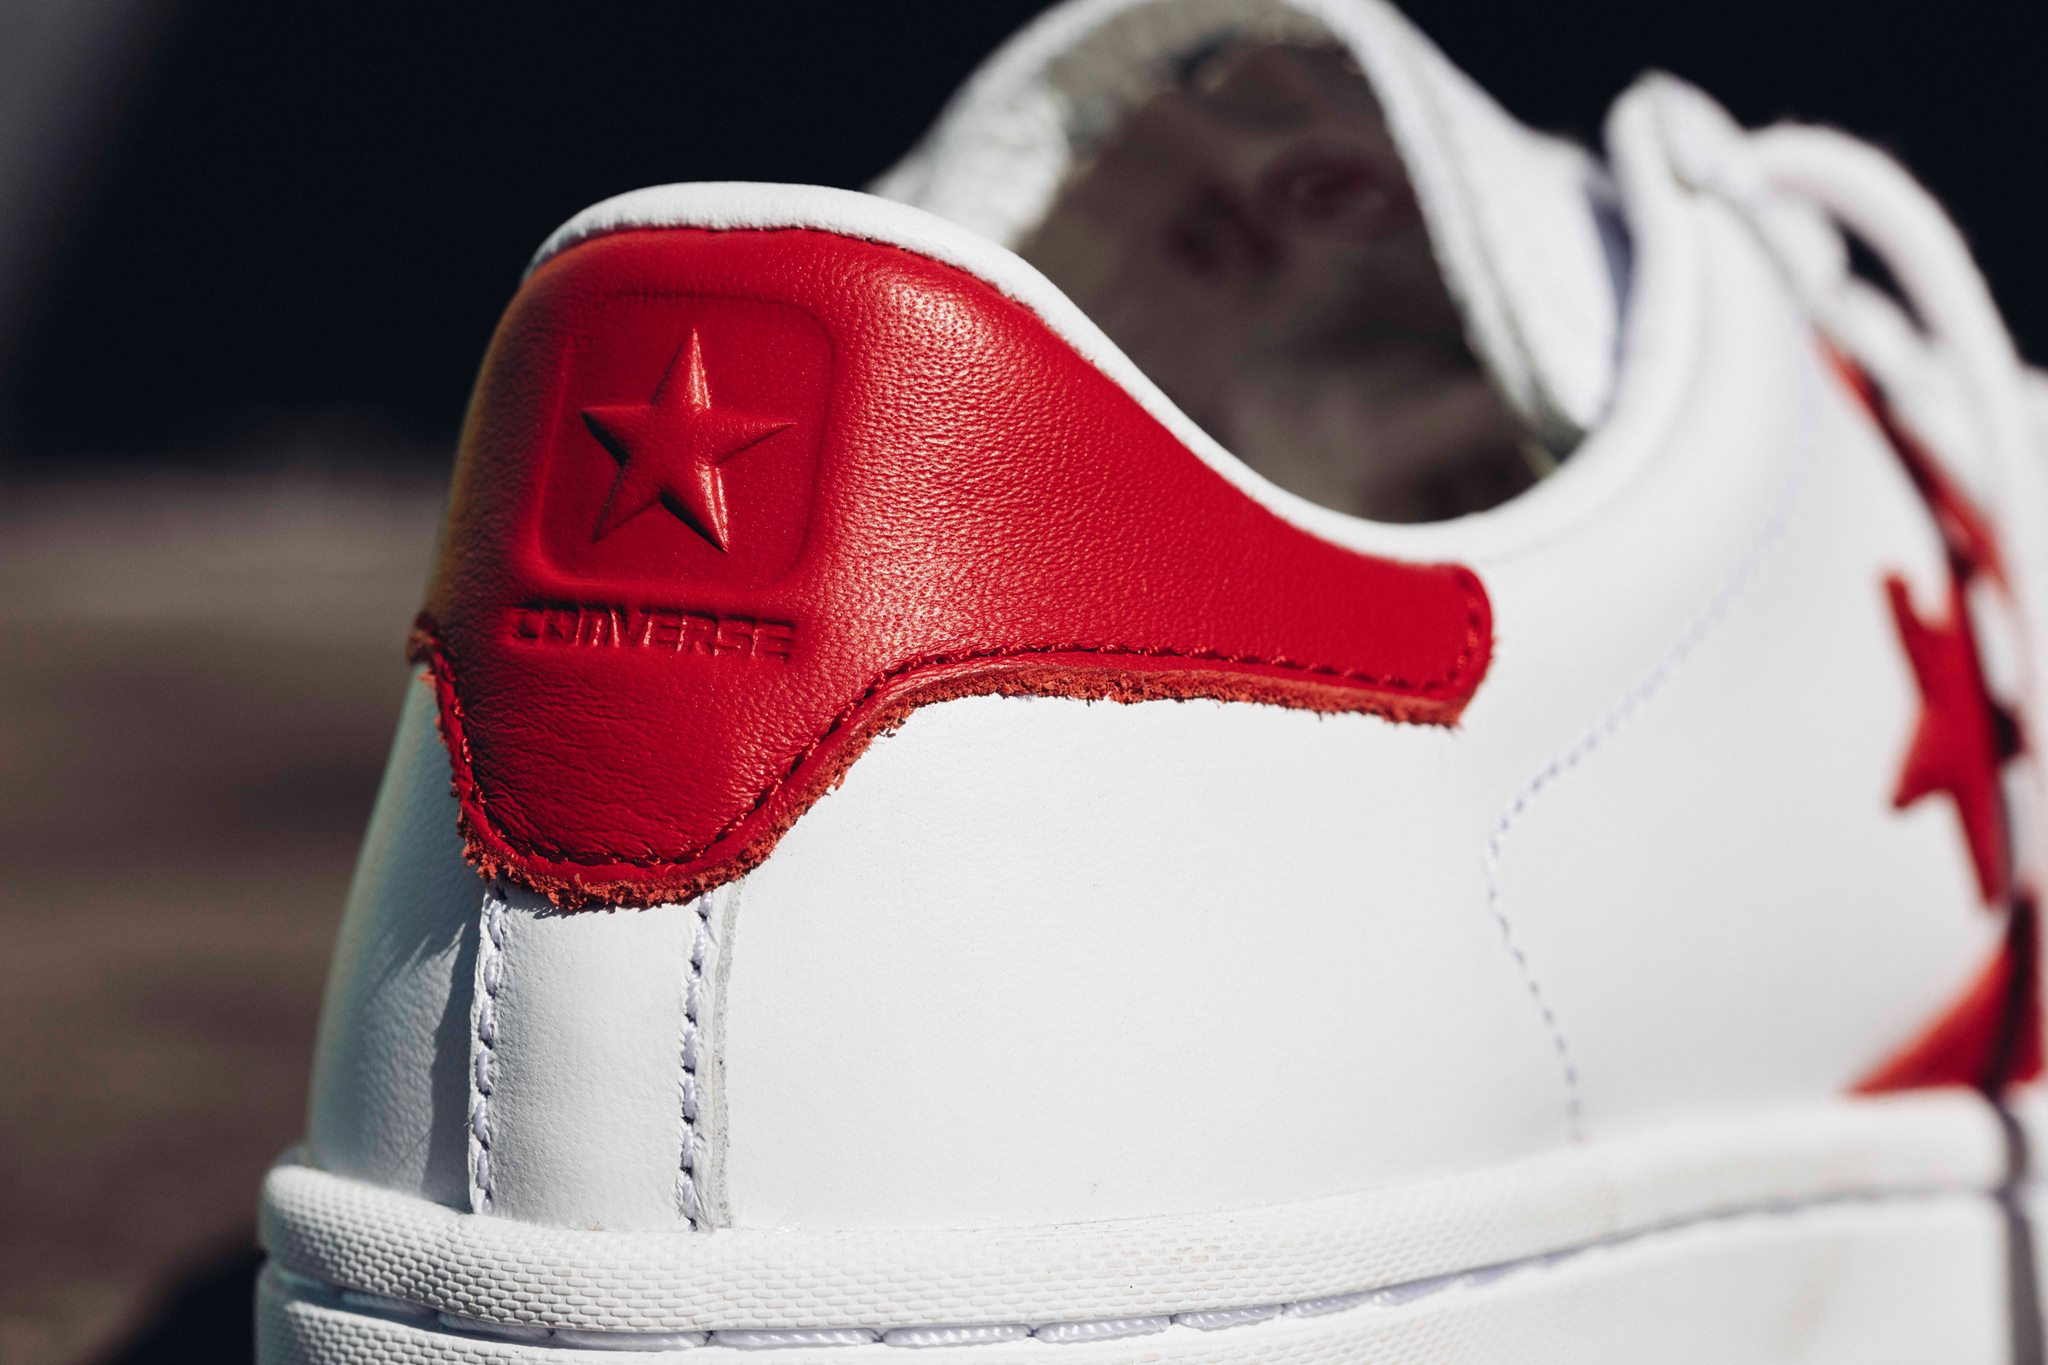 Converse Cons Pro Leather LP Leather Red